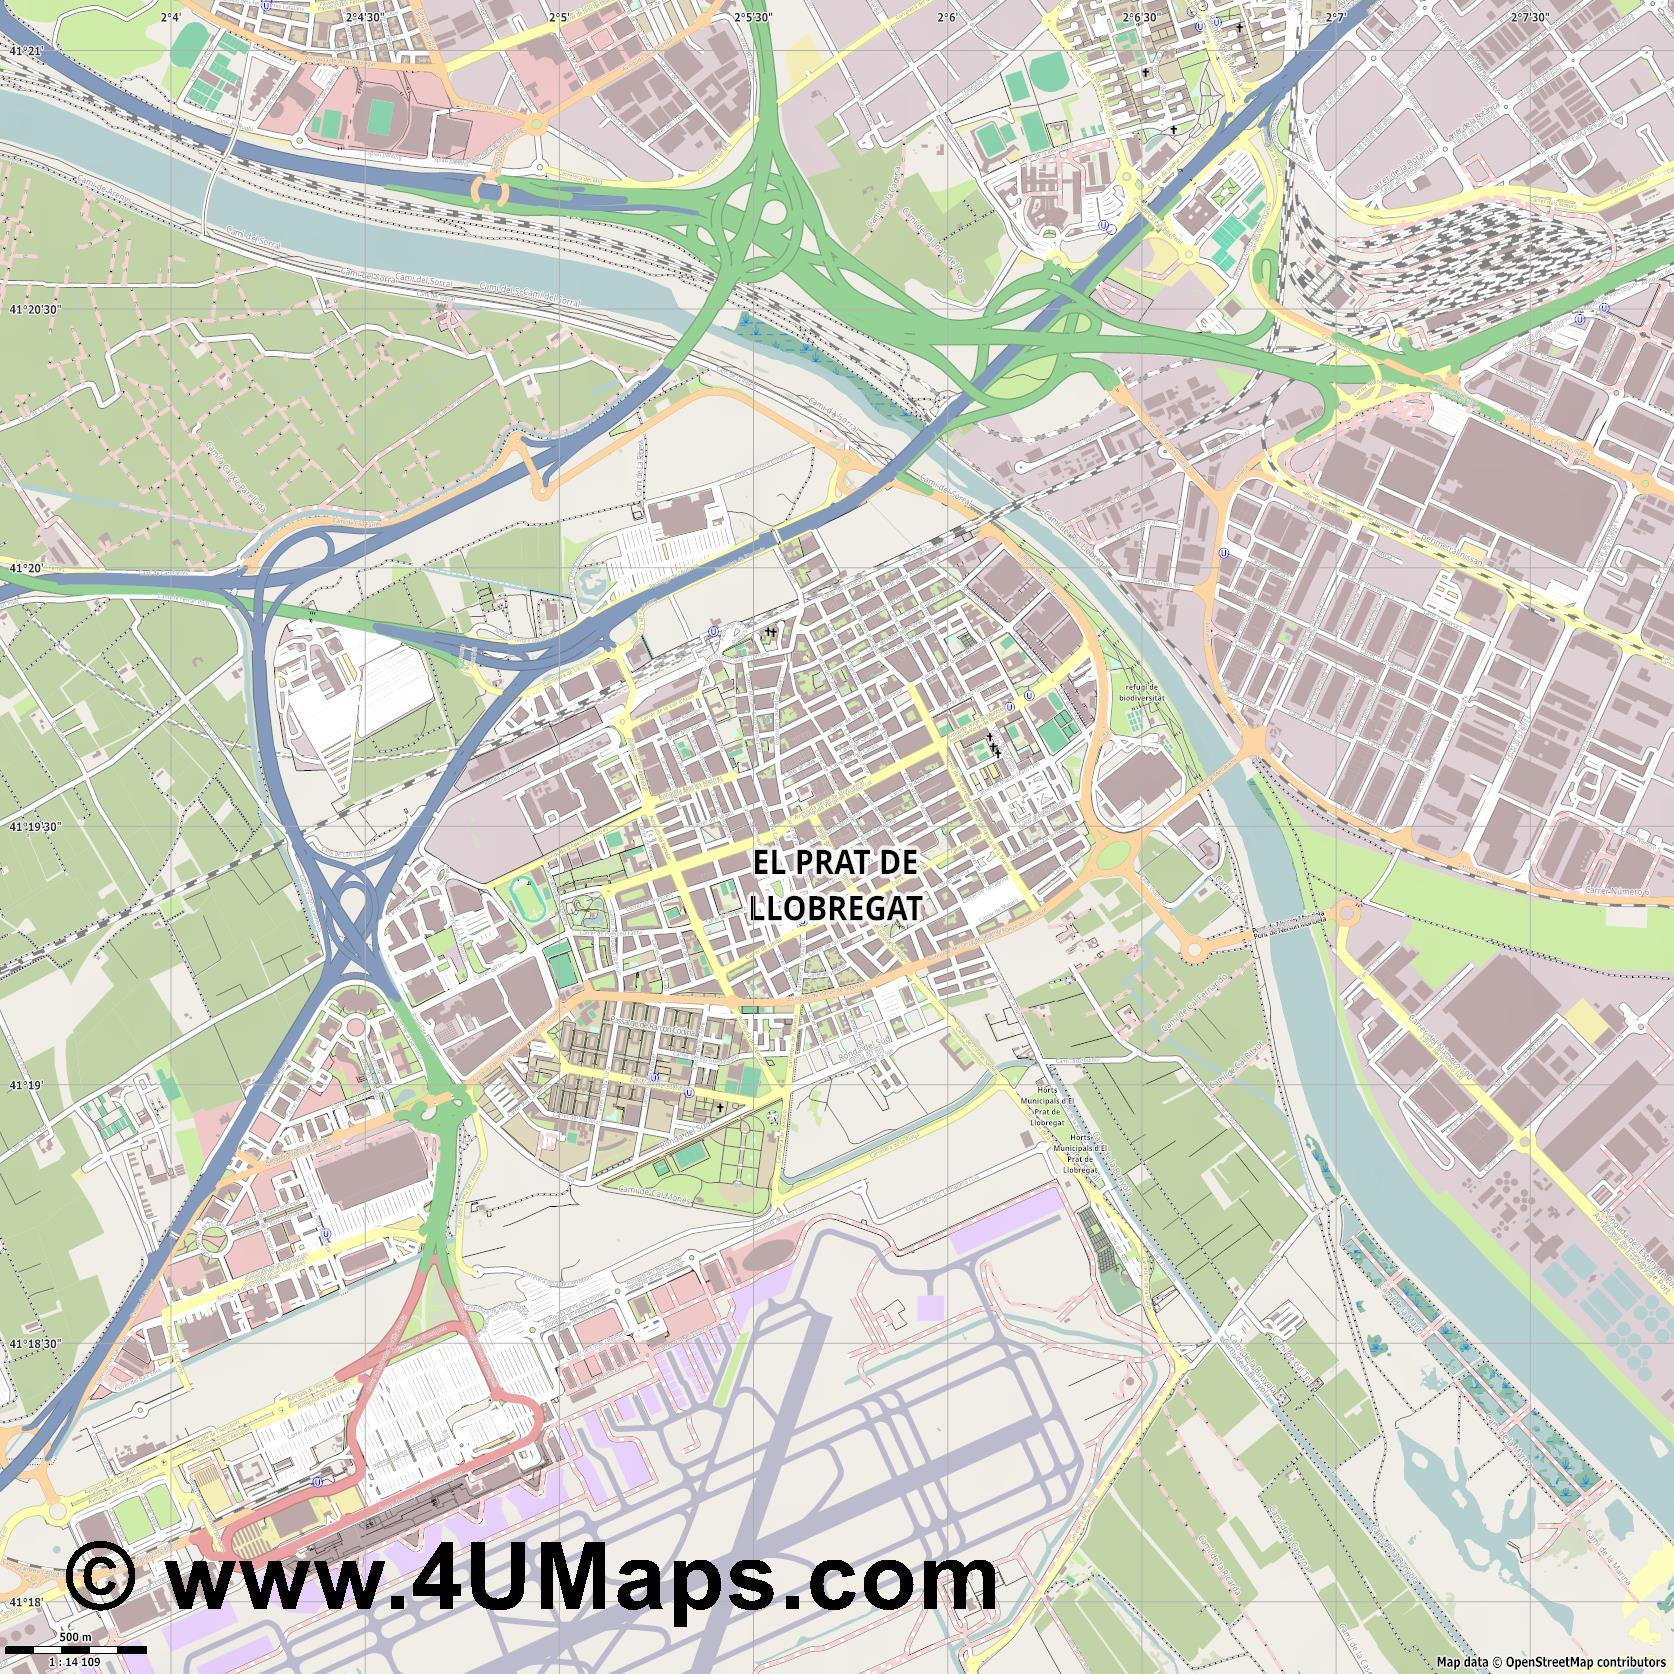 el Prat de Llobregat El Prat de Llobregat  jpg ultra high detail preview vector city map